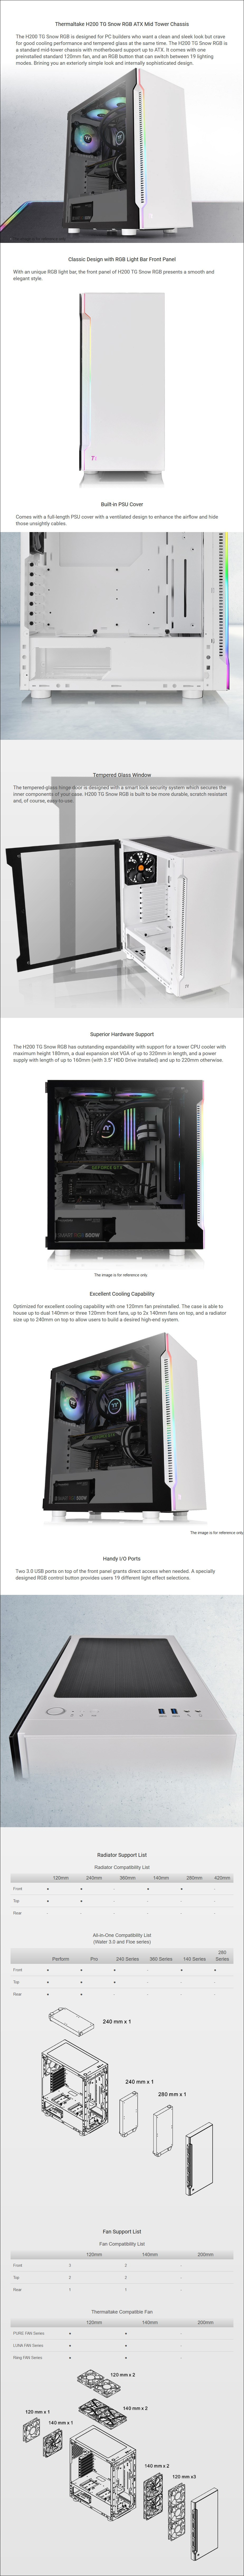 Thermaltake H200 RGB Tempered Glass Mid-Tower ATX Case - Snow - Overview 1